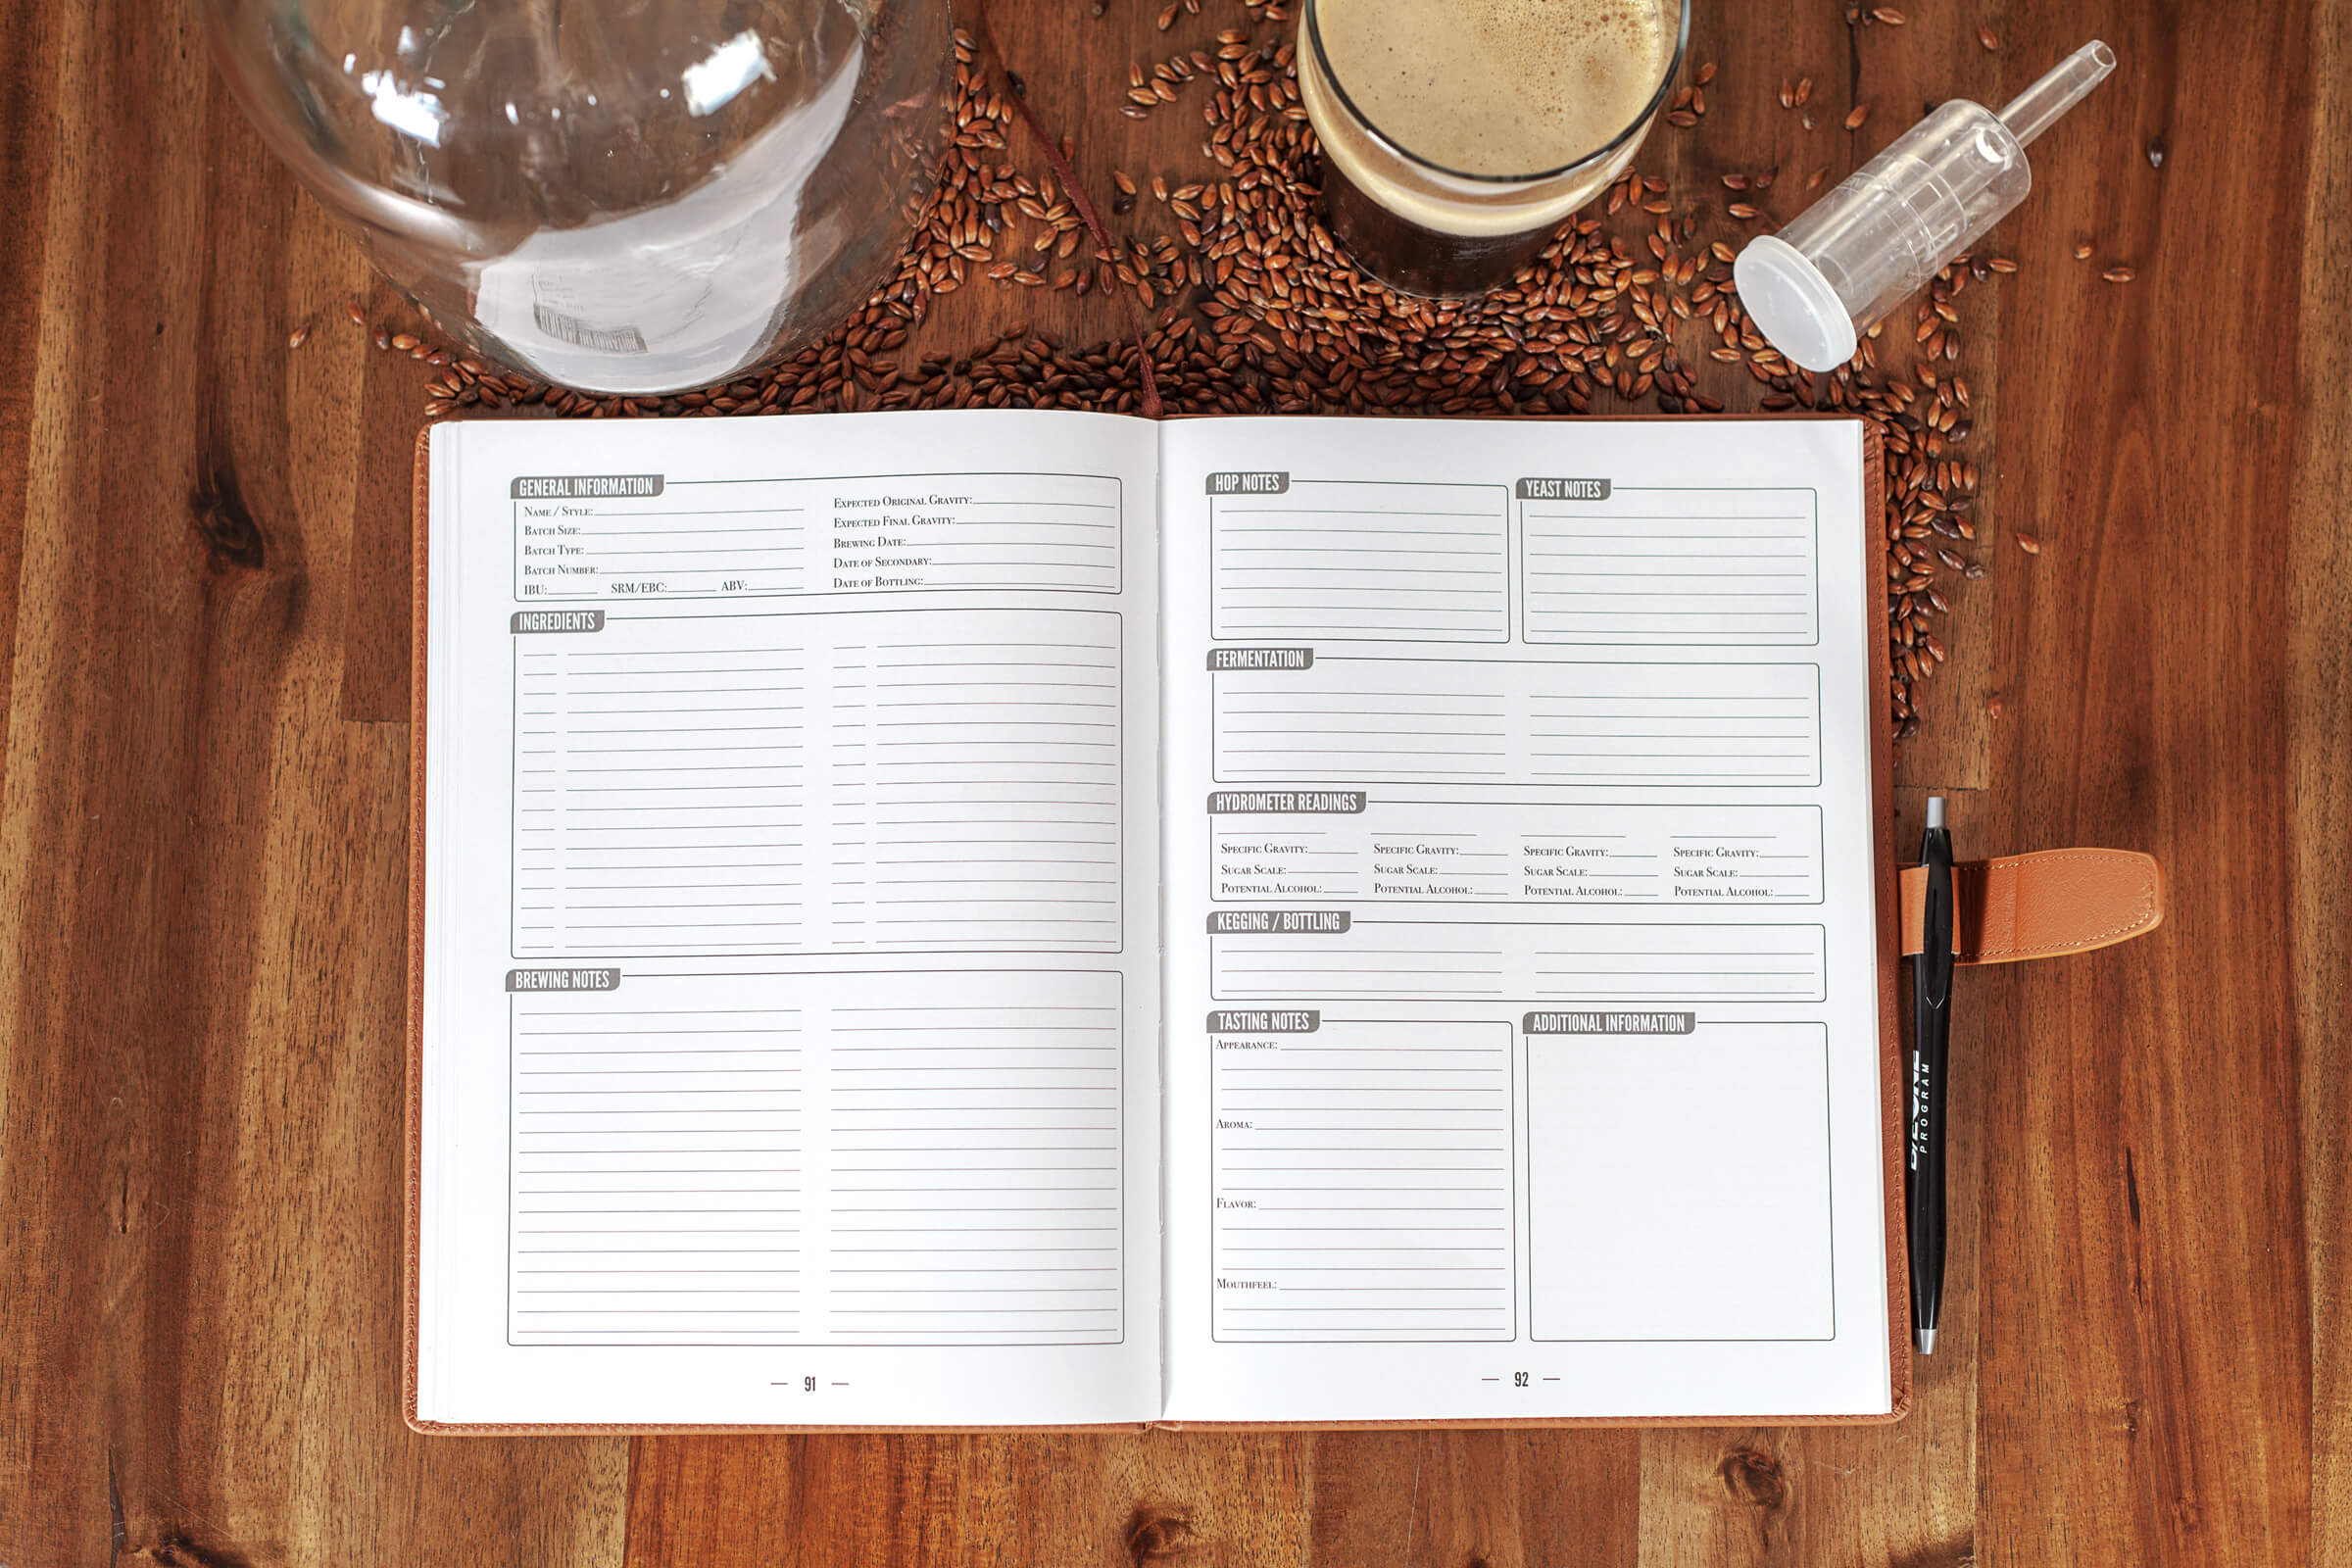 Home Brew Journal - A Logbook For Craft Beer Recipes